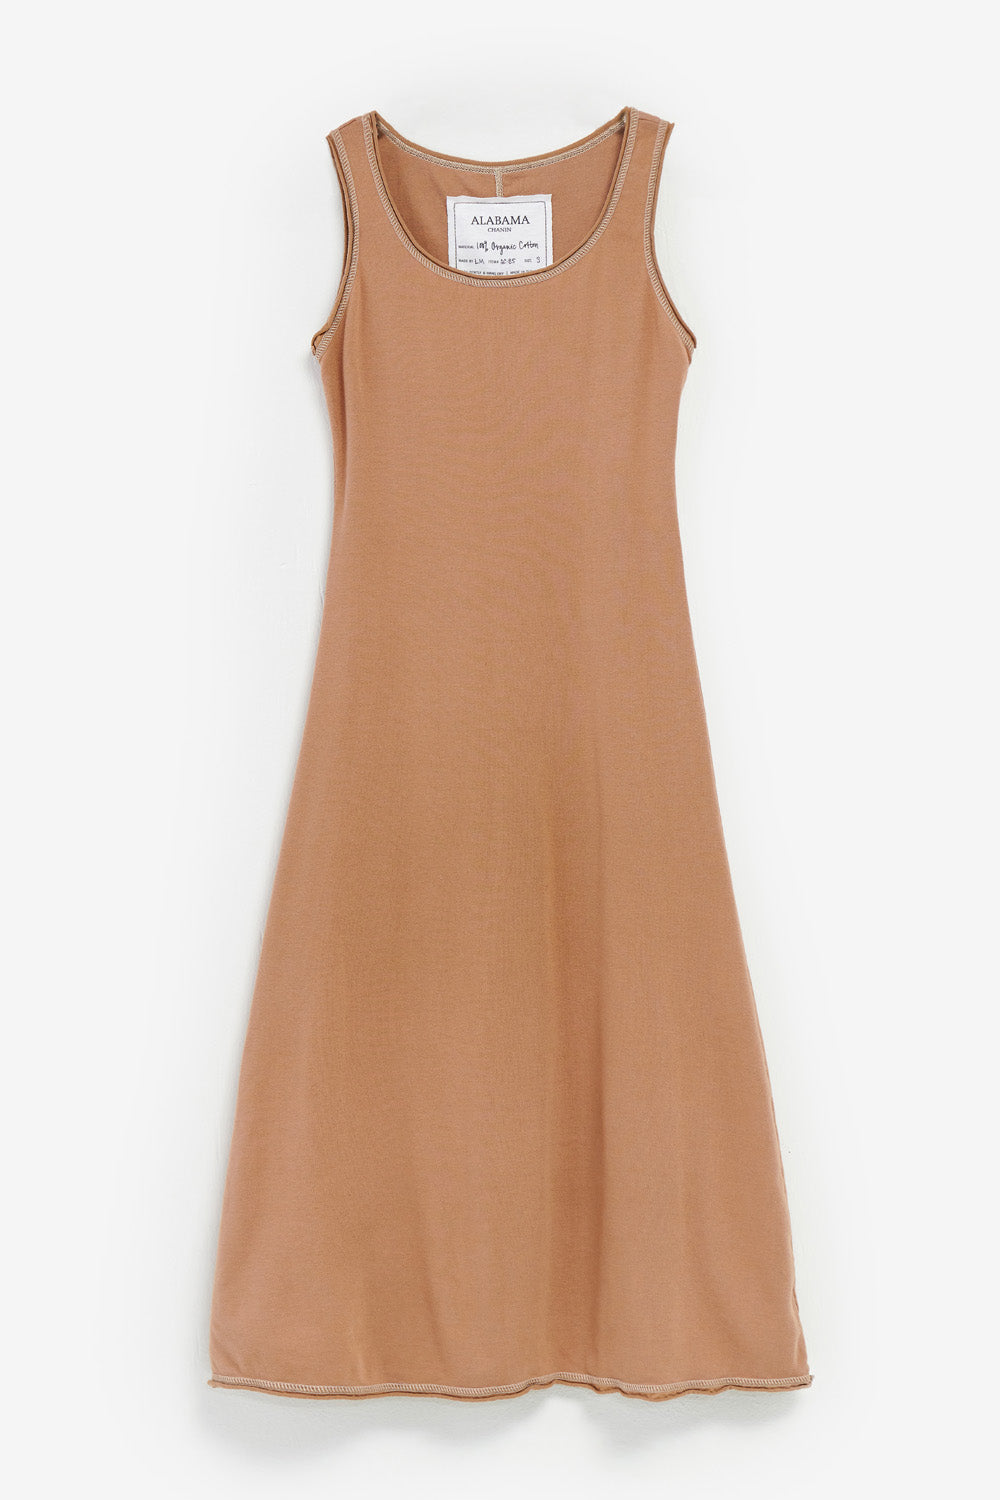 Alabama Chanin The Slip Dress Machine-sewn Organic Cotton Rib Dress in Camel